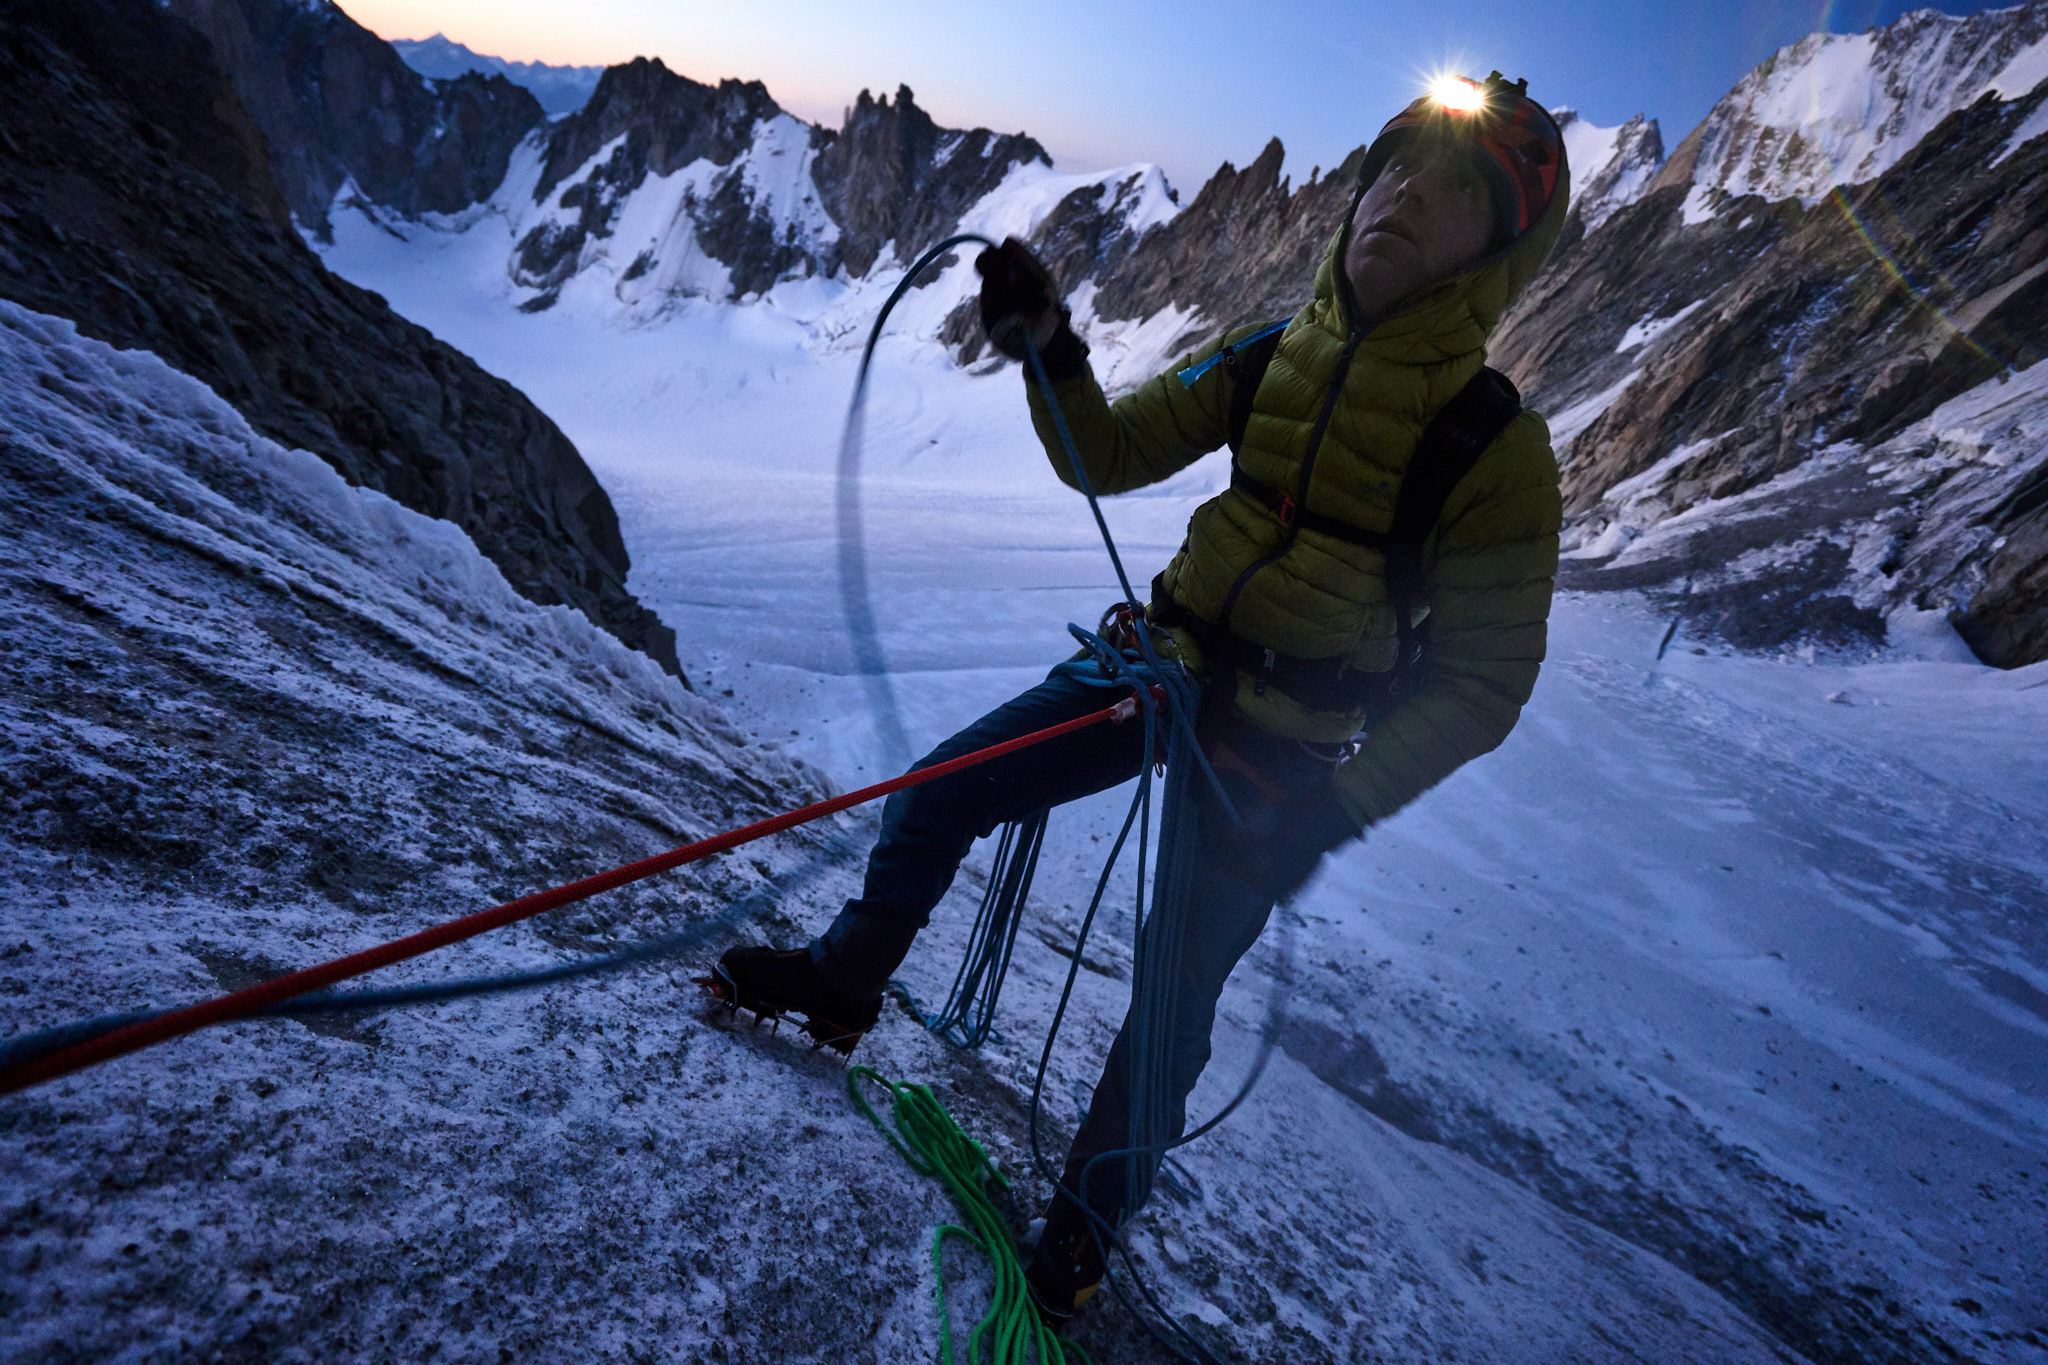 Willis belaying half way up the bulletproof ice slope at the foot of the Diables Arête